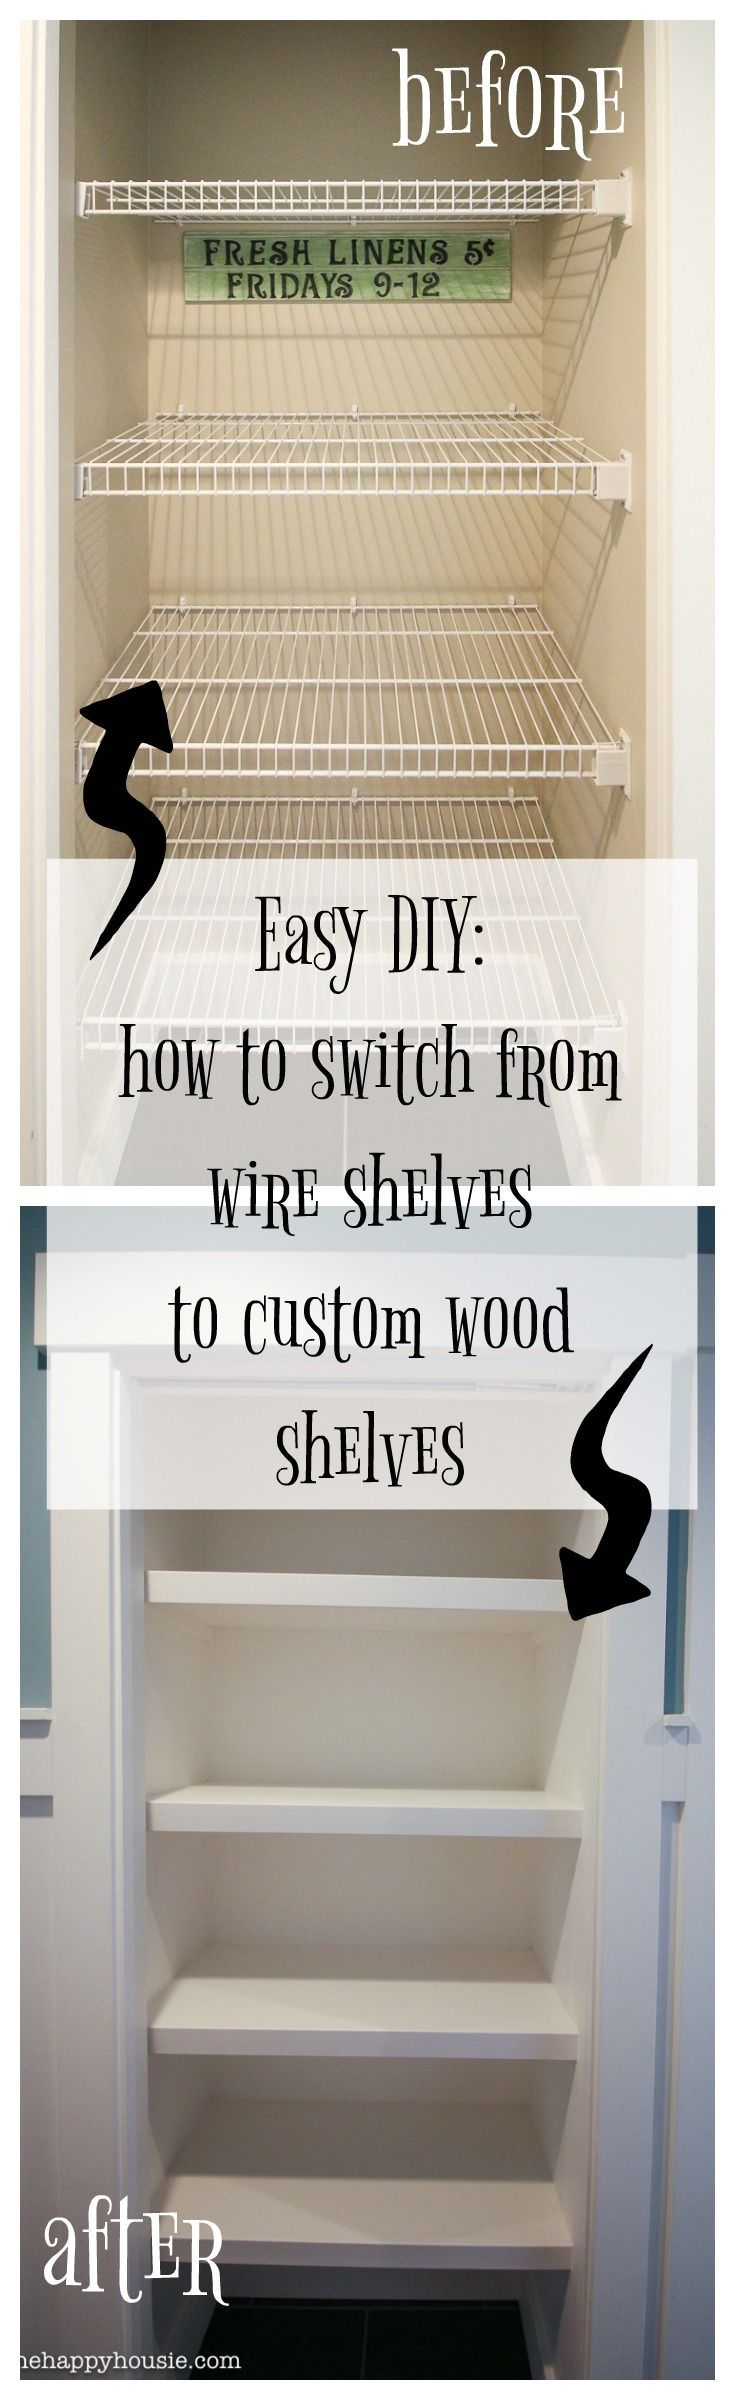 How To Replace Wire Shelves With DIY Custom Wood Shelves